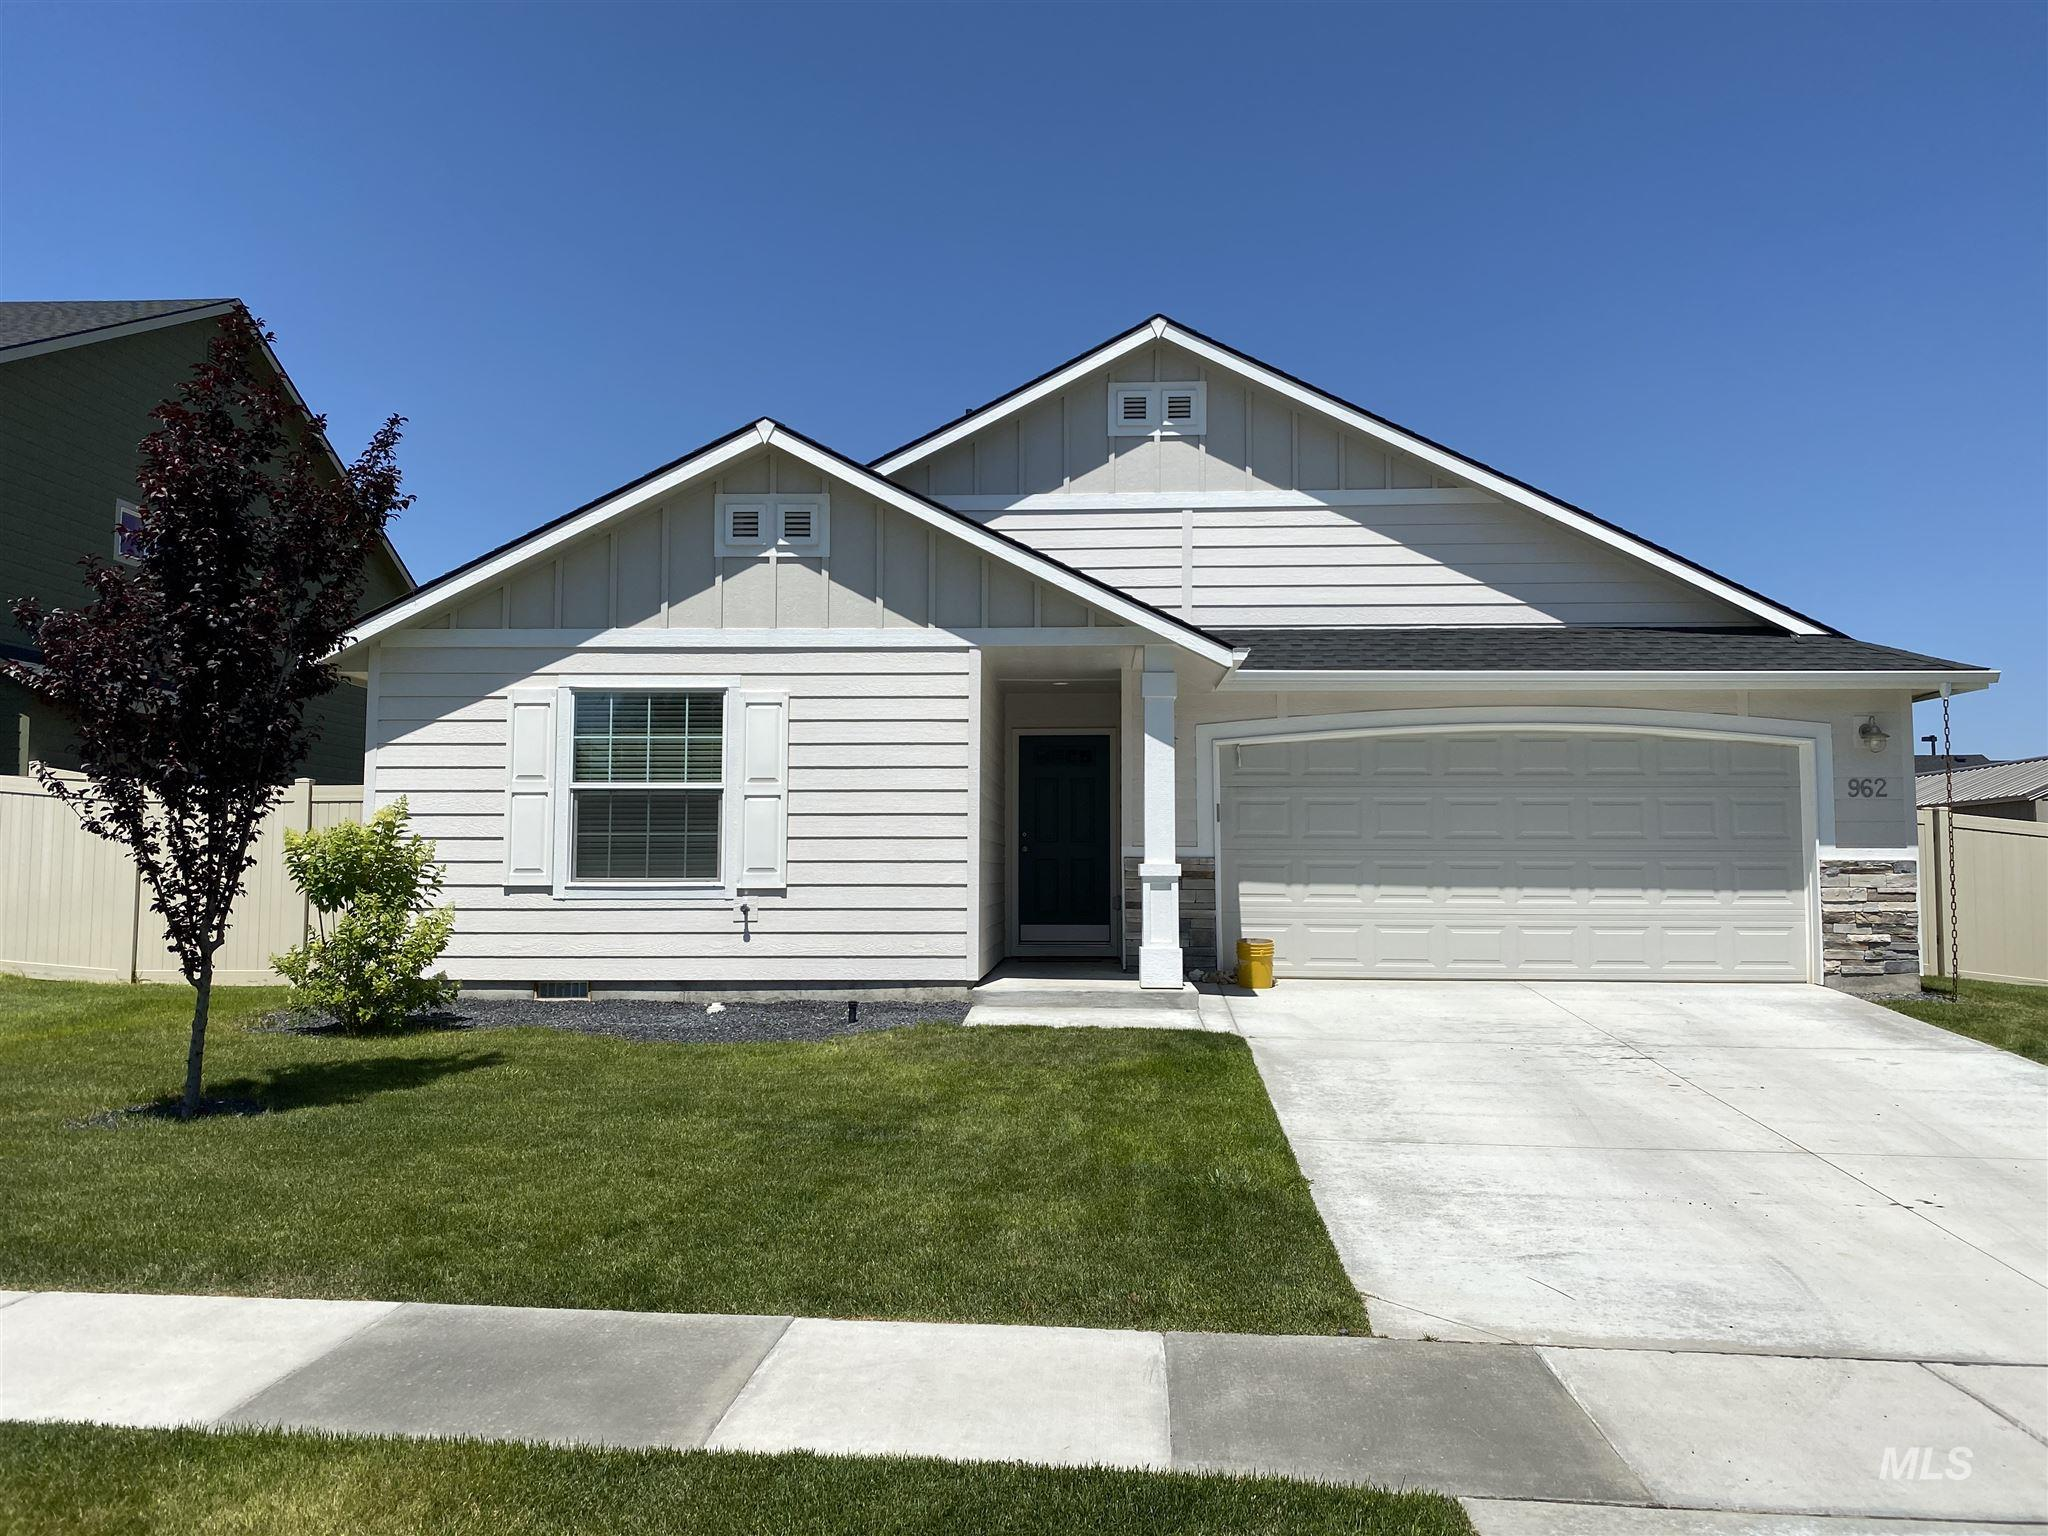 962 E Rose Island, Nampa, Idaho 83686, 3 Bedrooms, 2 Bathrooms, Residential For Sale, Price $264,900, 98772762